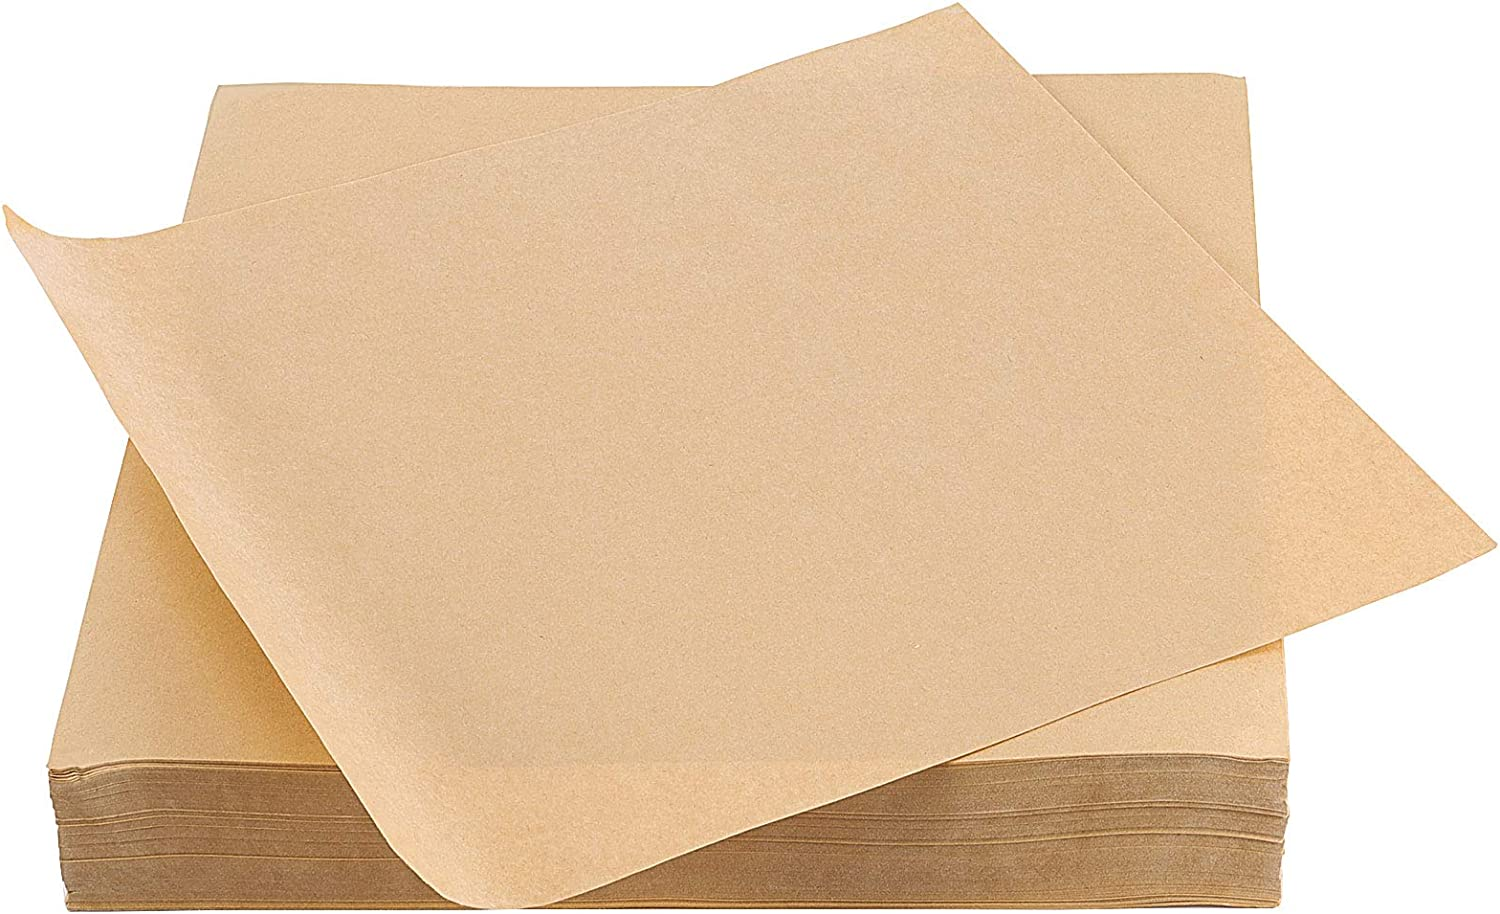 ZEONHEI 500 PCS 11.4 Inch Squares Wax Butcher Paper, Food Grade Deli Paper Sheets, Grease Resistant Wrapper with Single Side Film Covering, Sandwich Wrapping Paper for Pastries Cookies